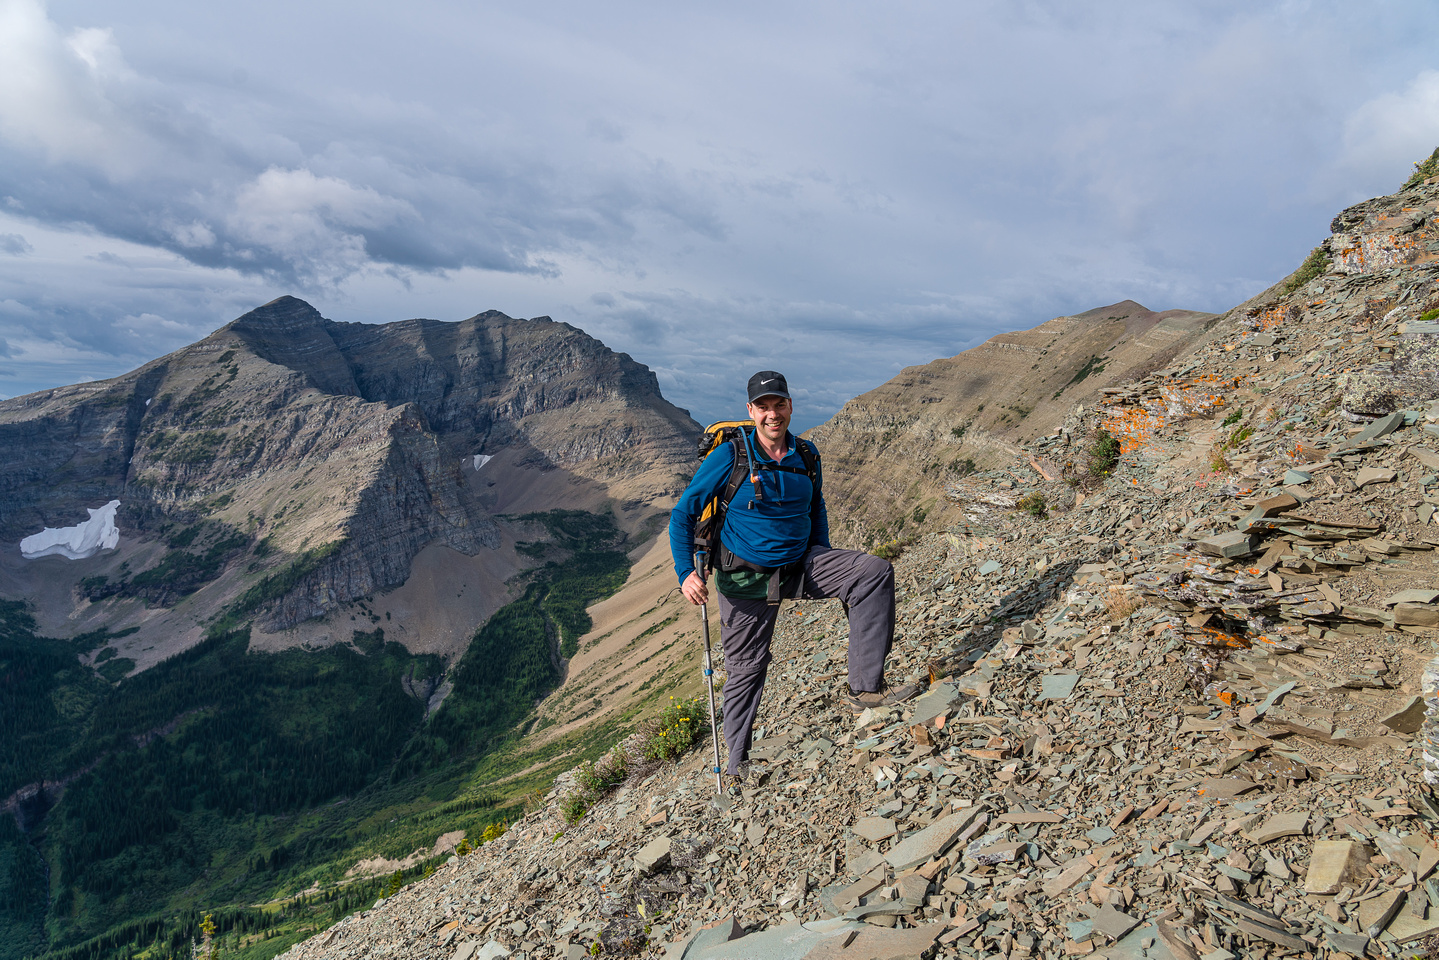 Ascending the east ridge of Mount Haig, views to Middle Kootenay Mountain.